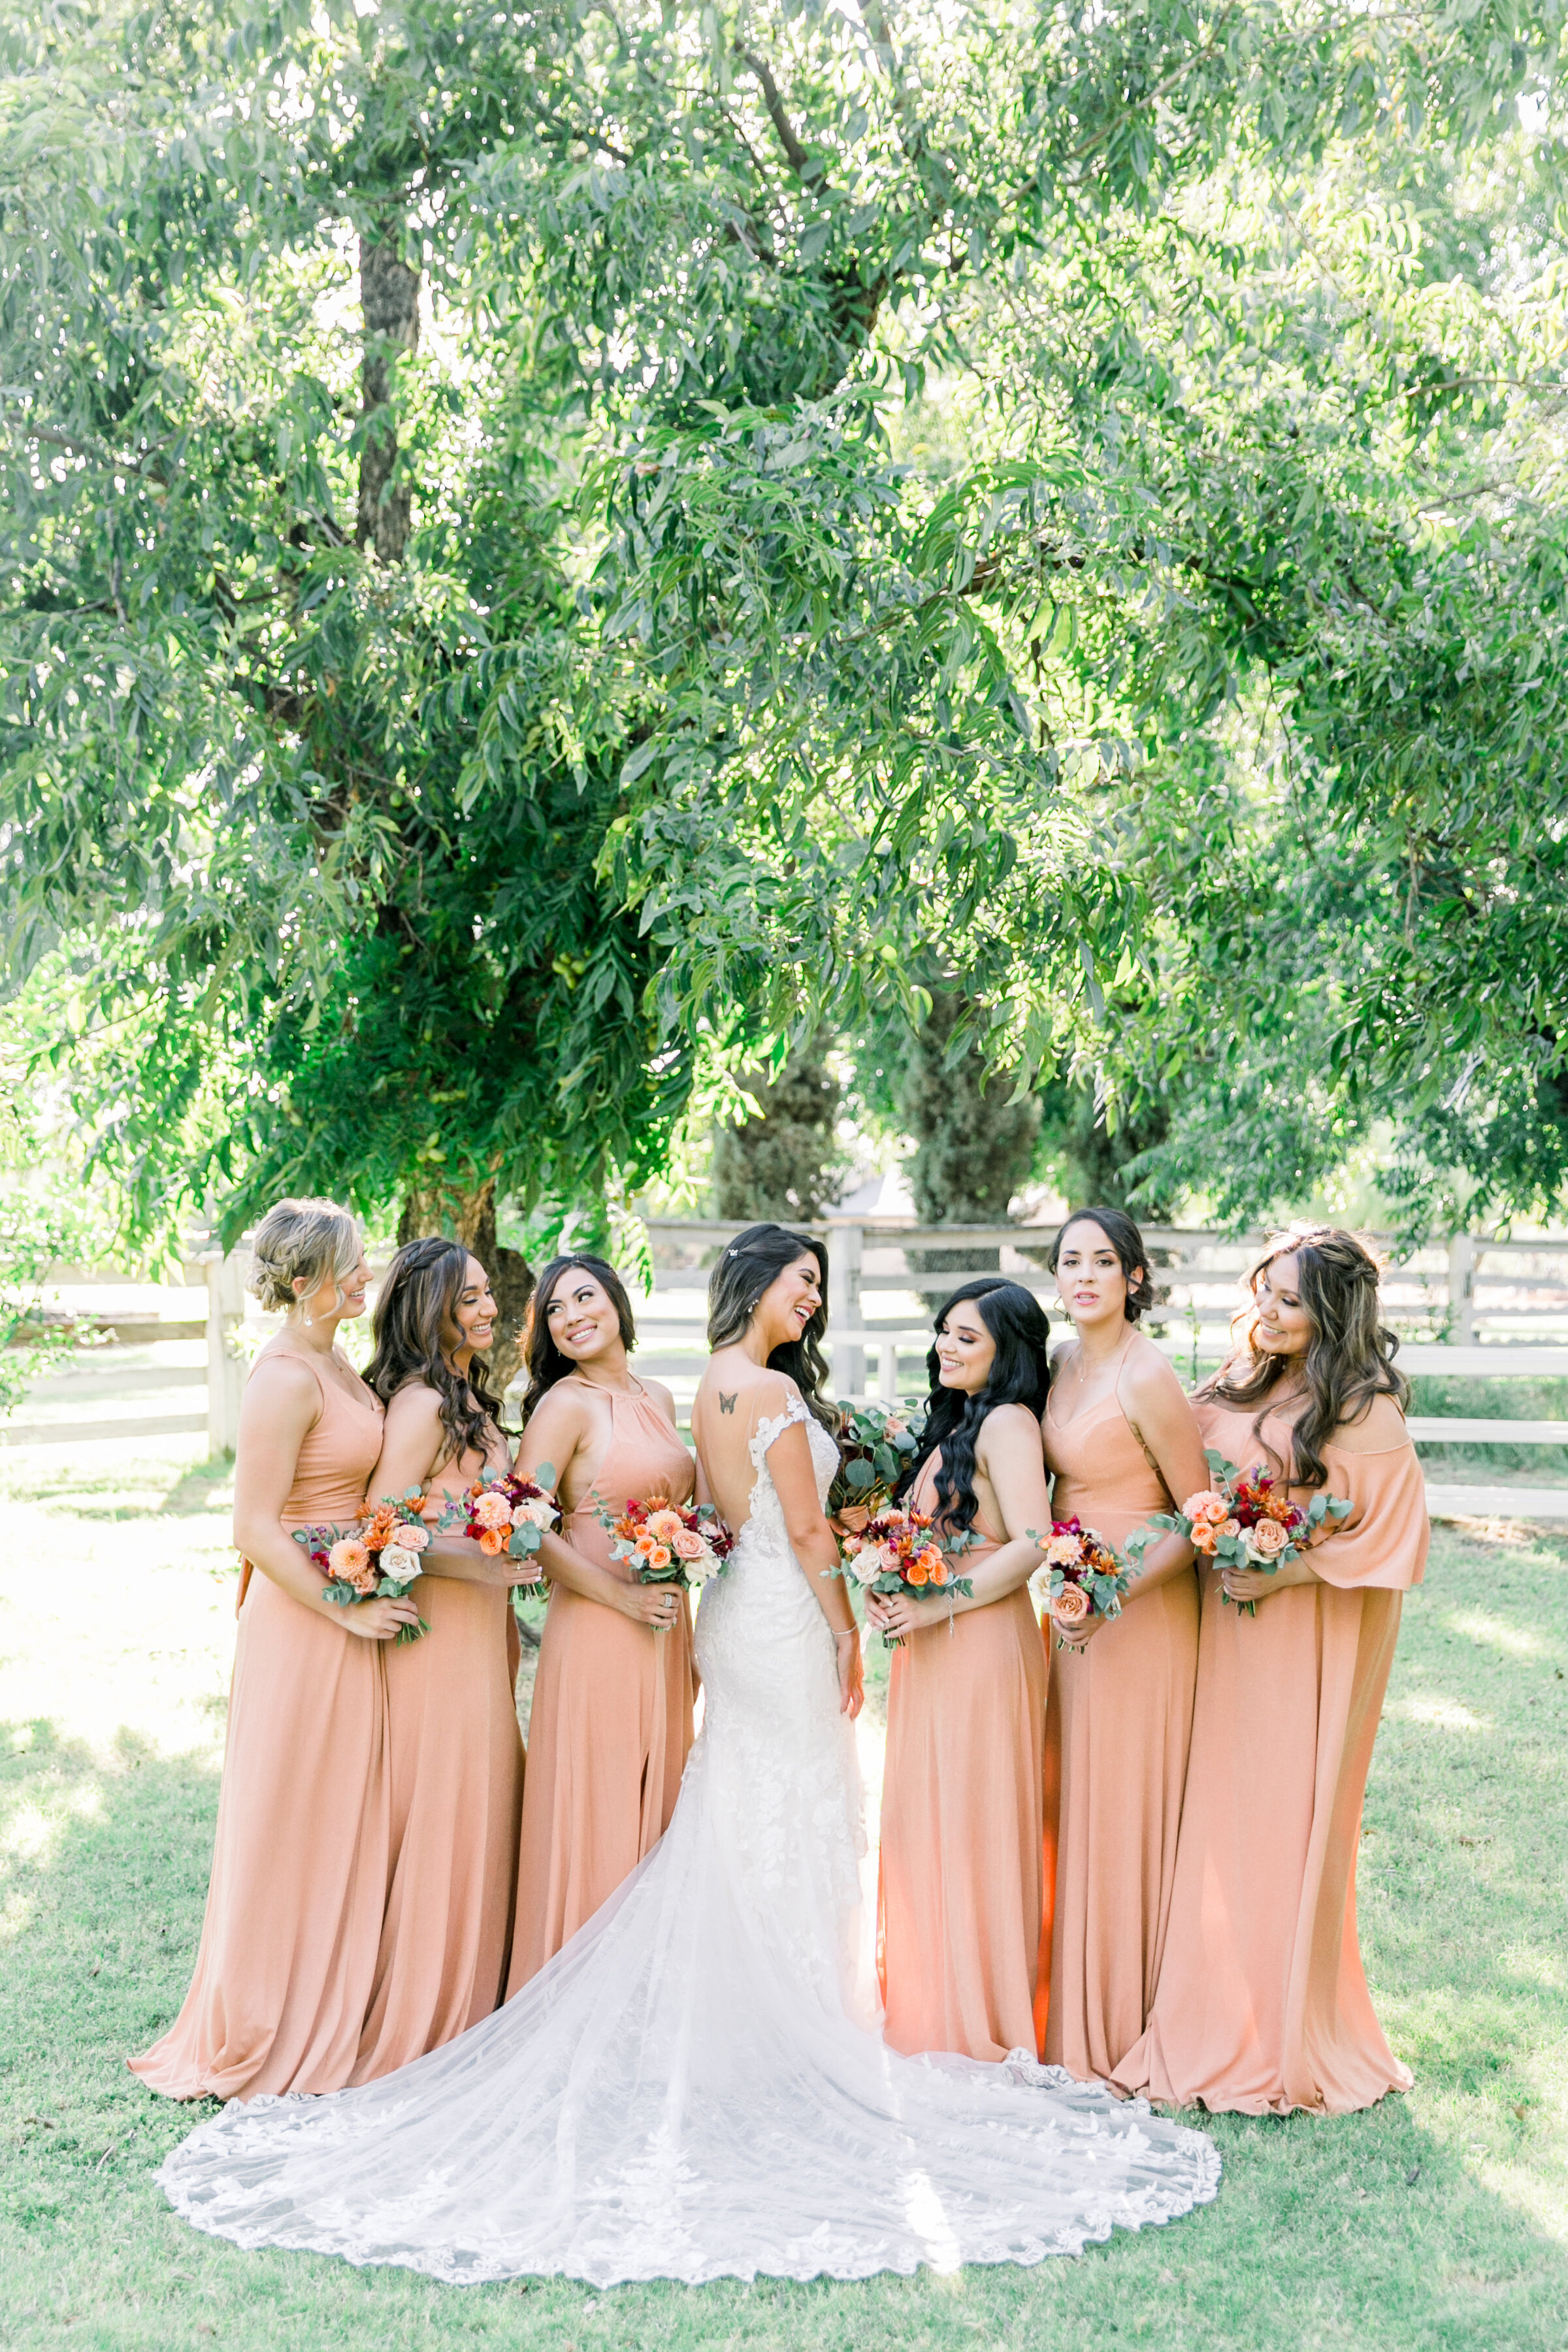 Karlie Colleen Photography - Phoenix Arizona - Farm At South Mountain Venue - Vanessa & Robert-177